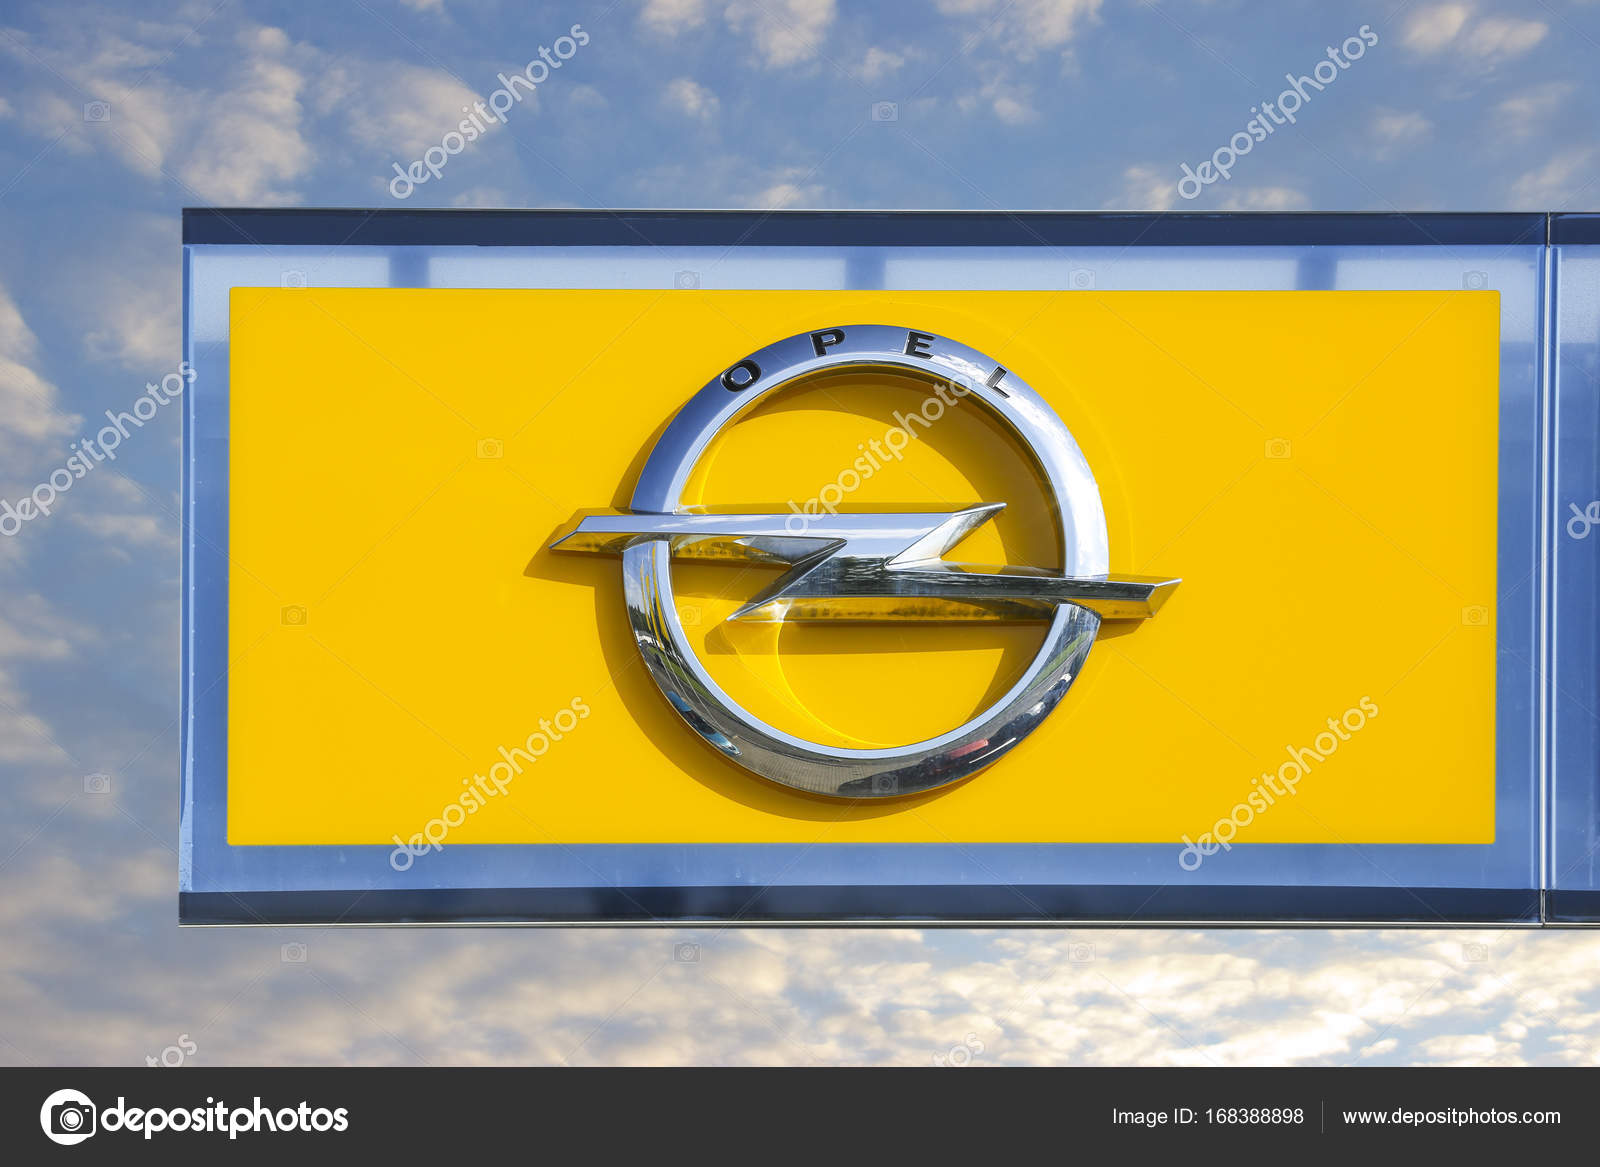 hight resolution of opel logo on a showroom facade stock photo